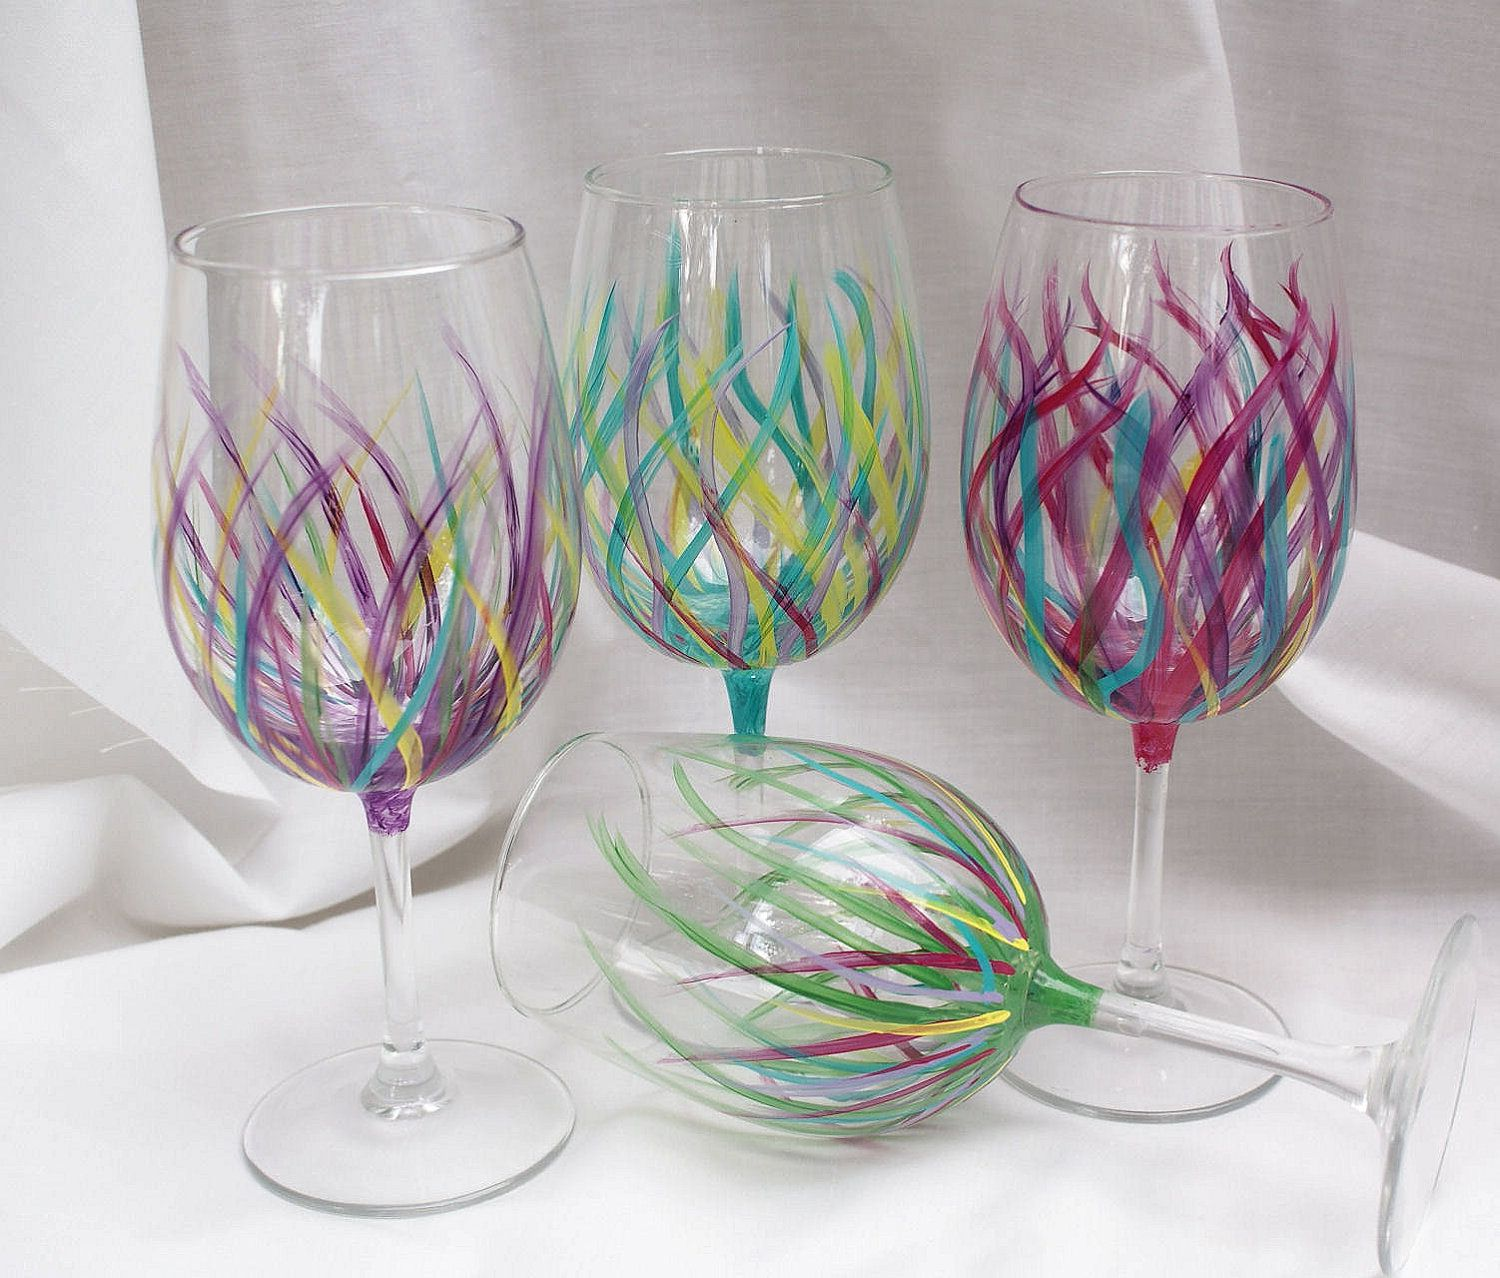 hand painted wine glasses kitchen tableware home decor. Black Bedroom Furniture Sets. Home Design Ideas